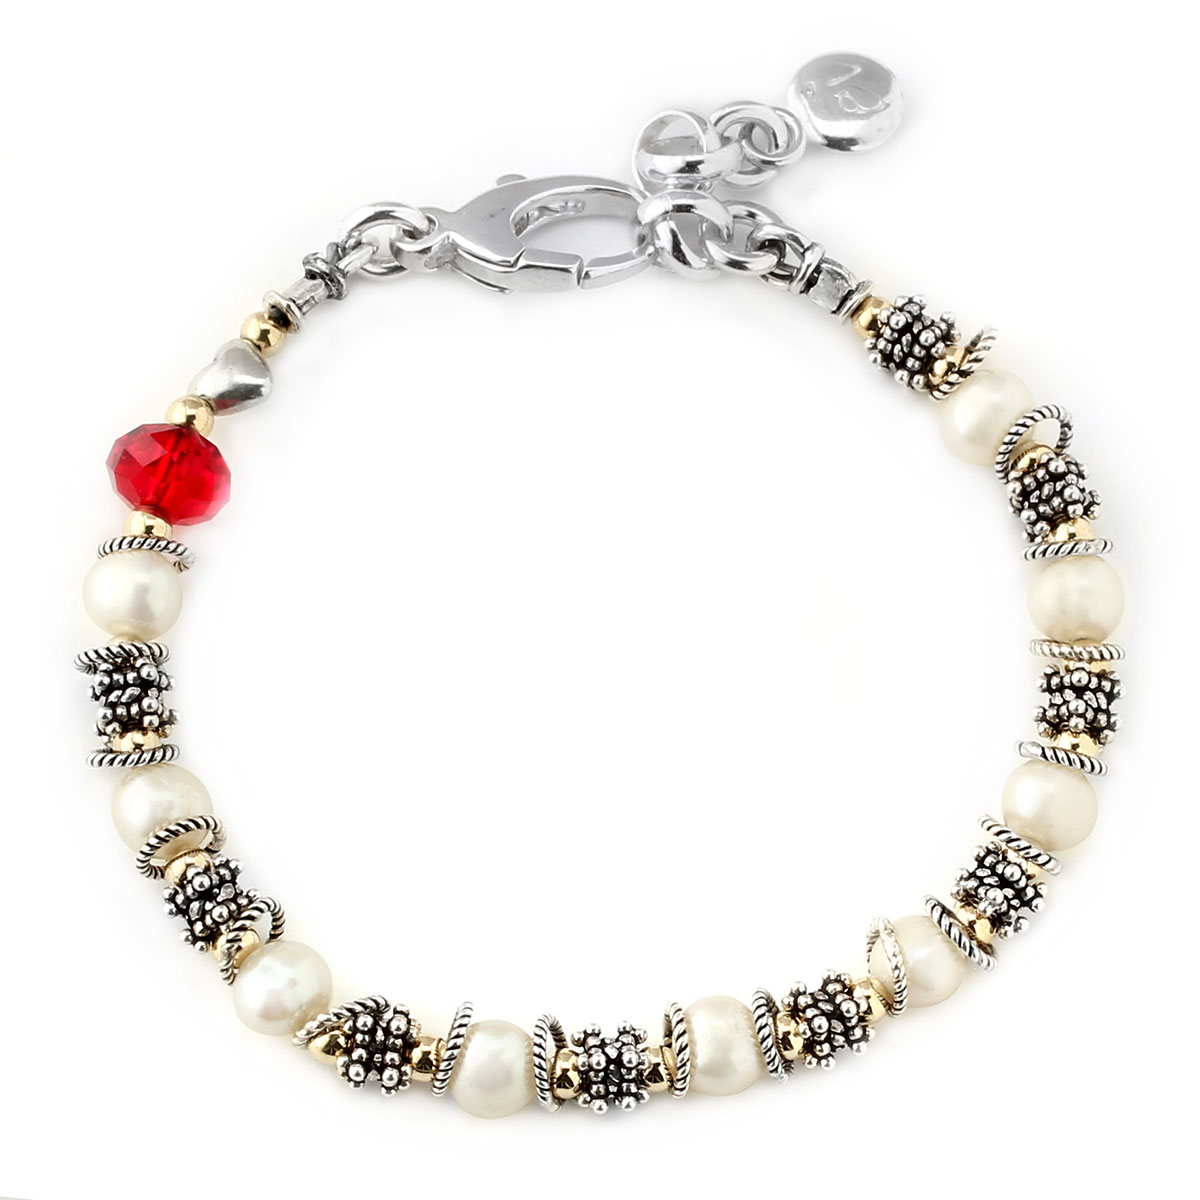 178556-Heart Awareness Bracelet 2